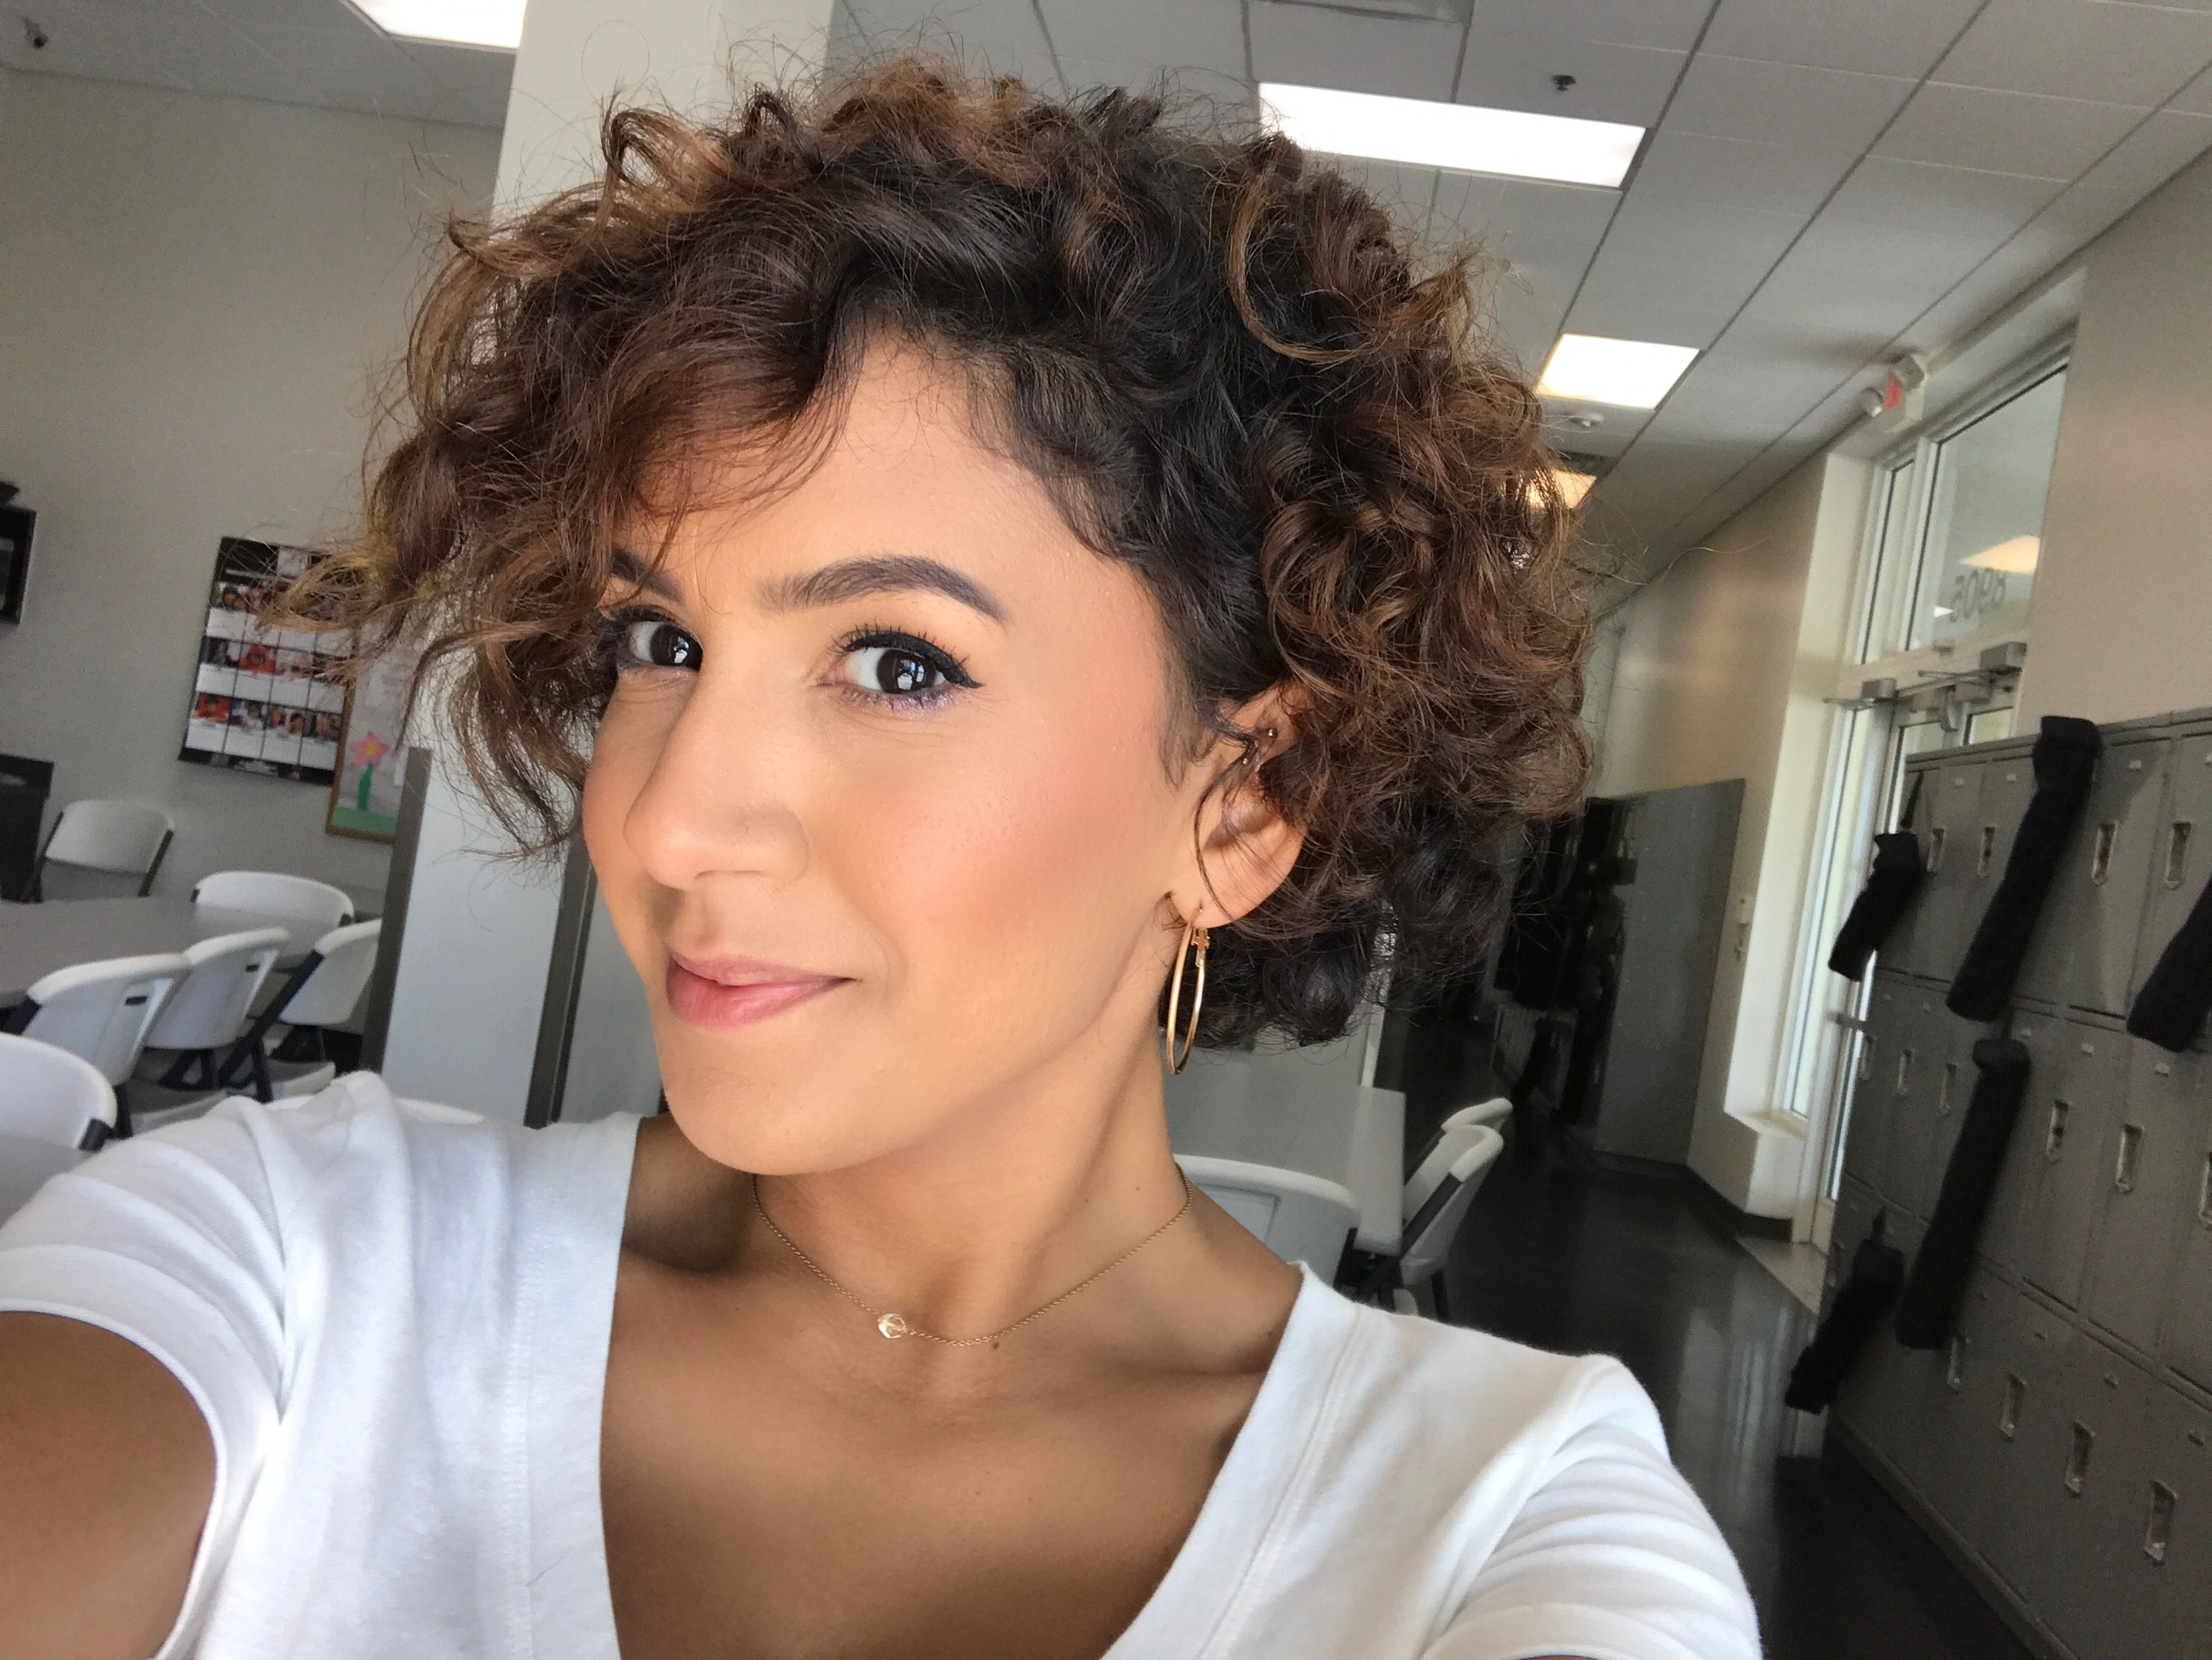 Amusing Short Curly Hairstyles Bob On Short Curly Bob Pixie Cut